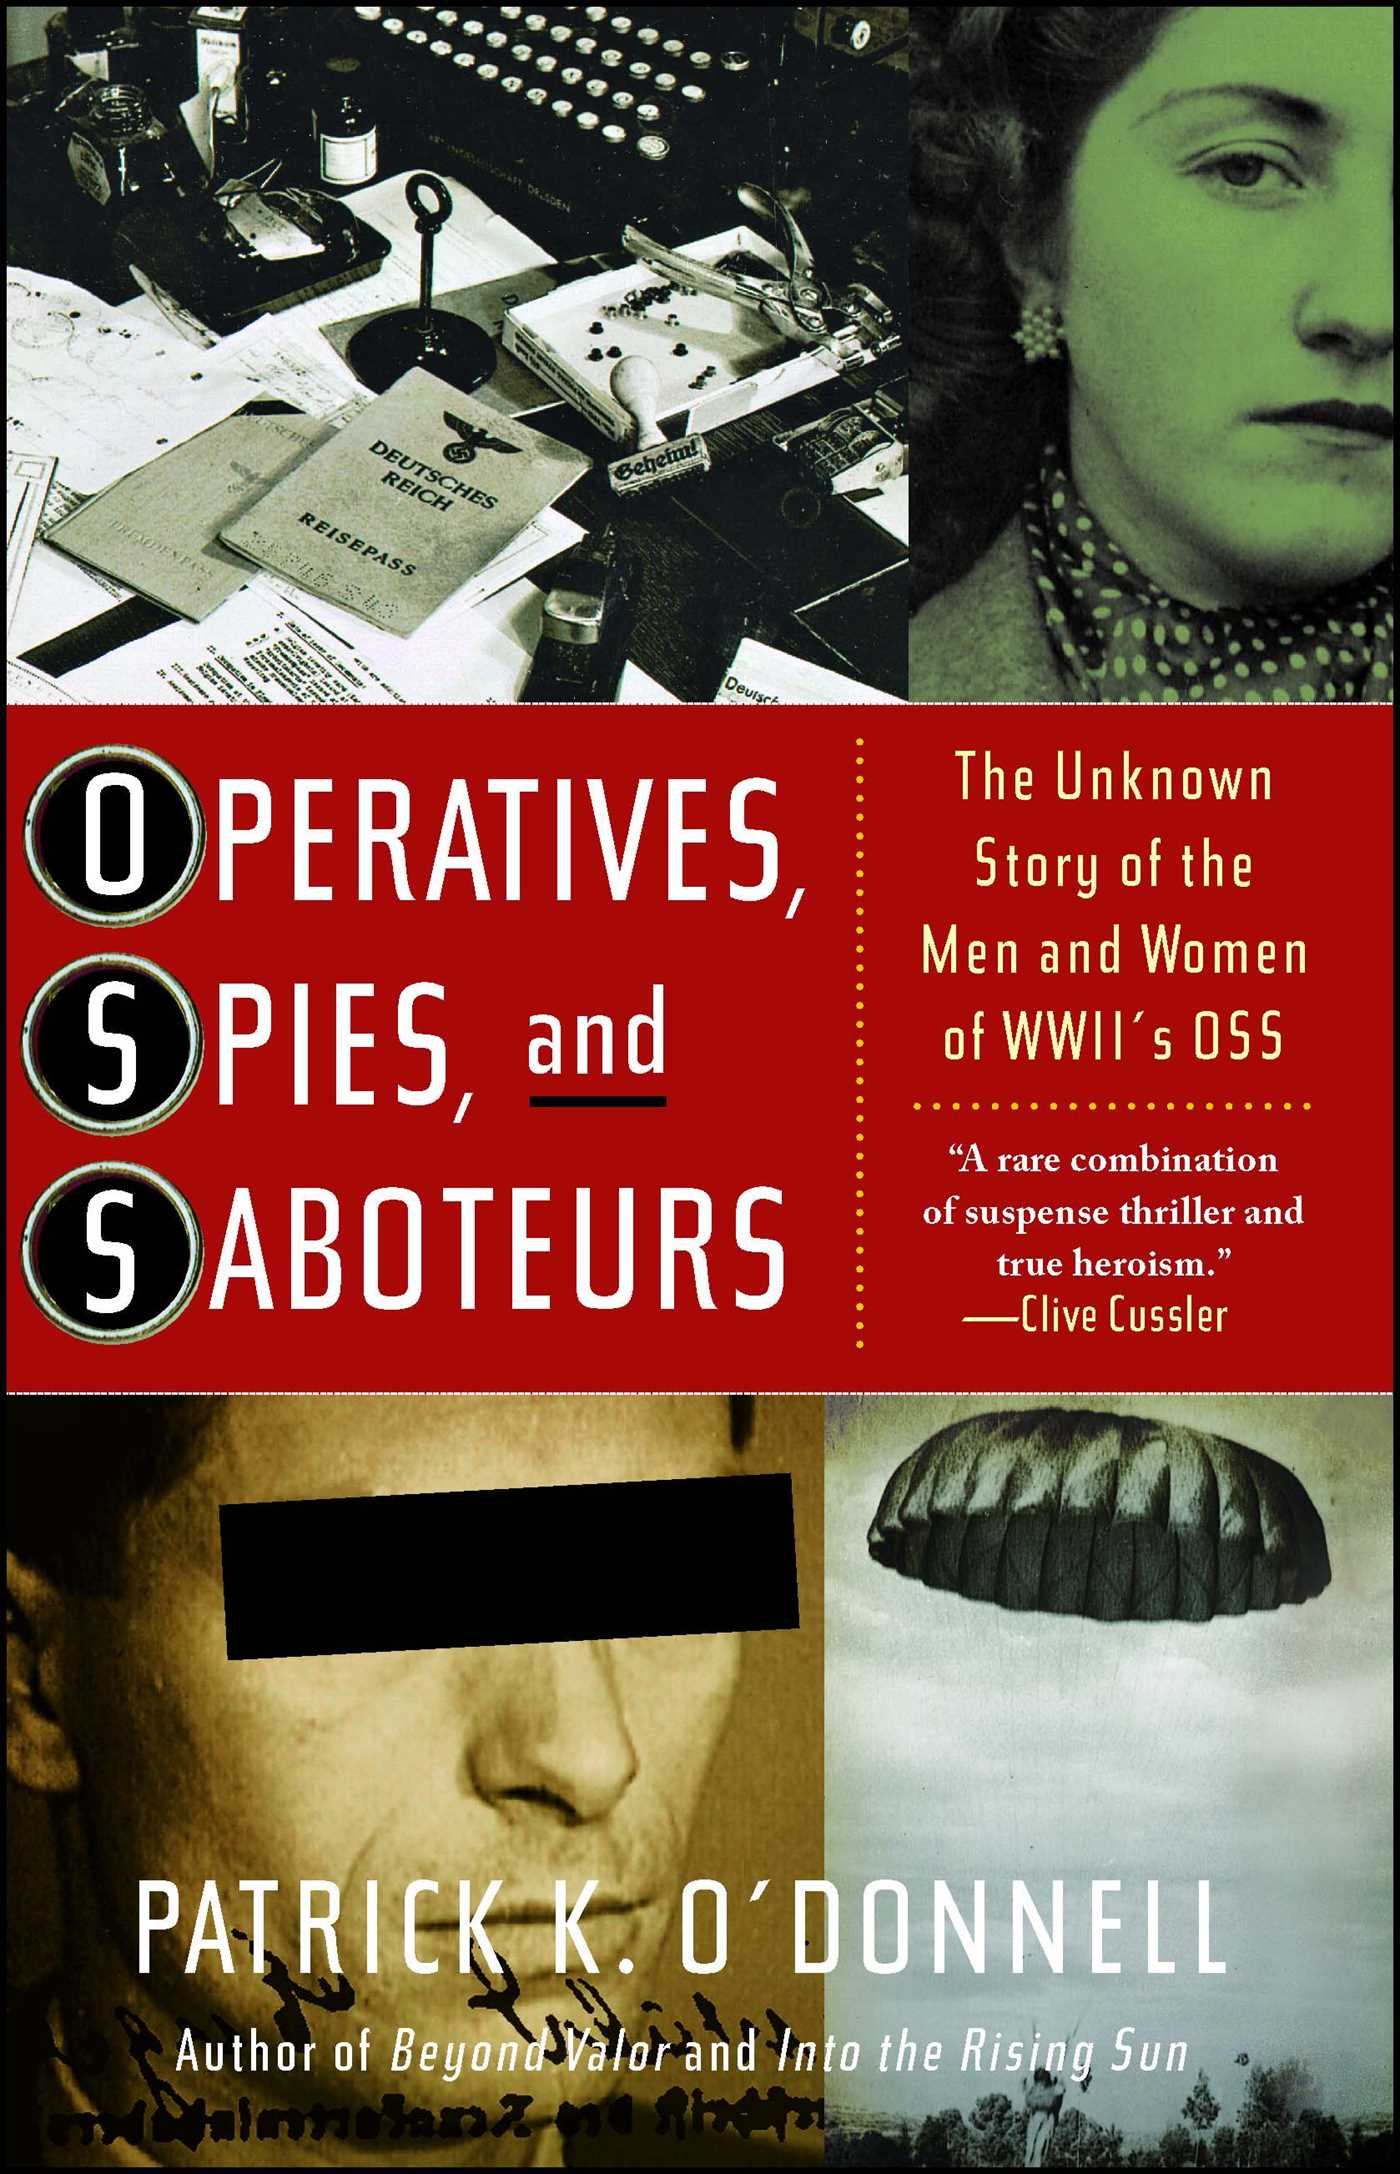 Operatives-spies-and-saboteurs-9780743258340_hr